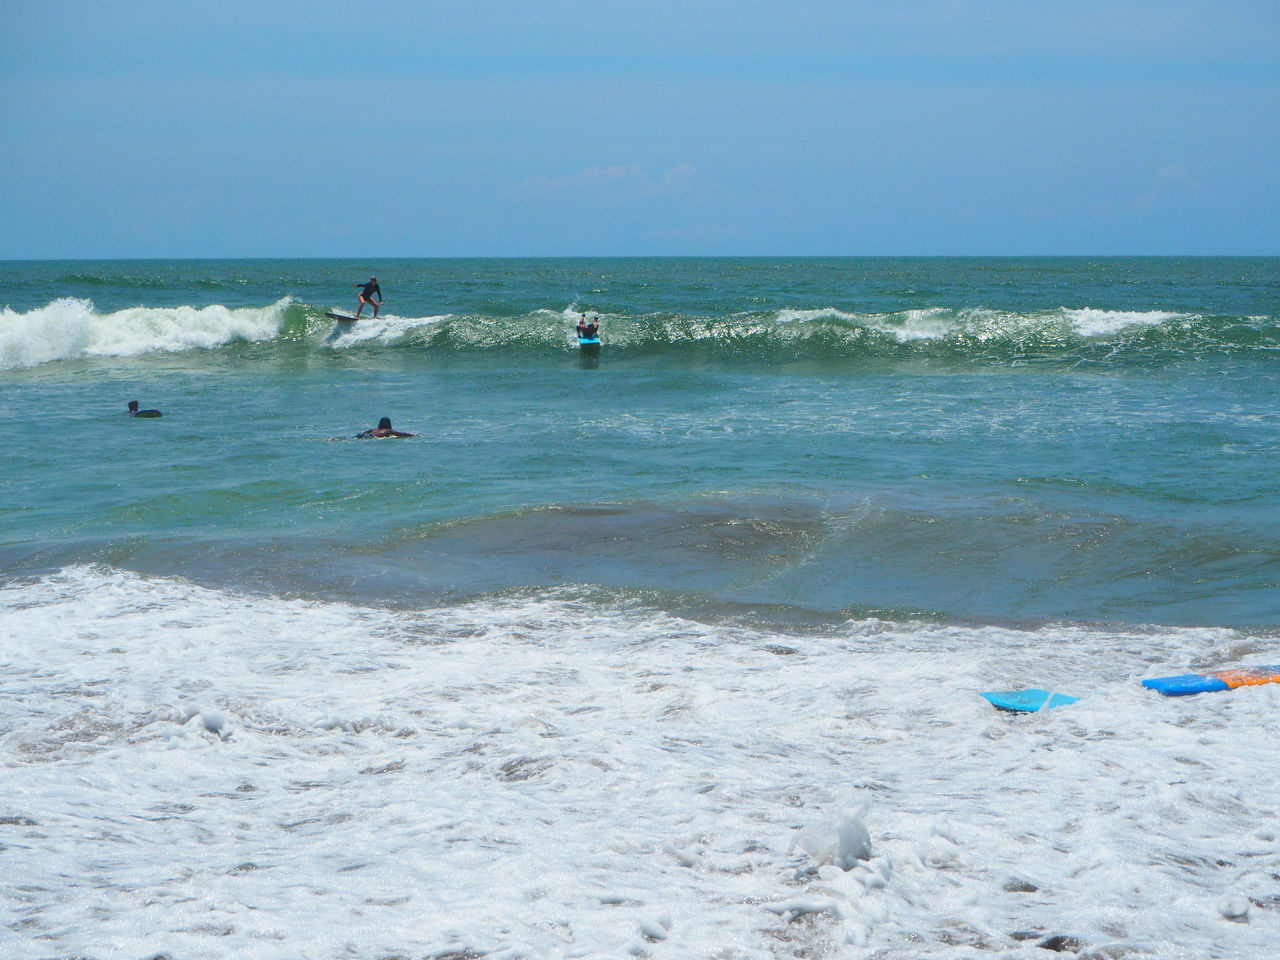 🏄‍♀️ Life Is A Beach 🏄‍♀️ Travel Canggu Bali Bali, Indonesia Beach Beach Life Beauty In Nature Blue Sky Exceptional Photographs EyeEmNewHere Landscapes Leisure Activity Lifestyles Nature Outdoors People Scenics Sea Sky Sport Sunny Day Surfing Tadaa Community Wave